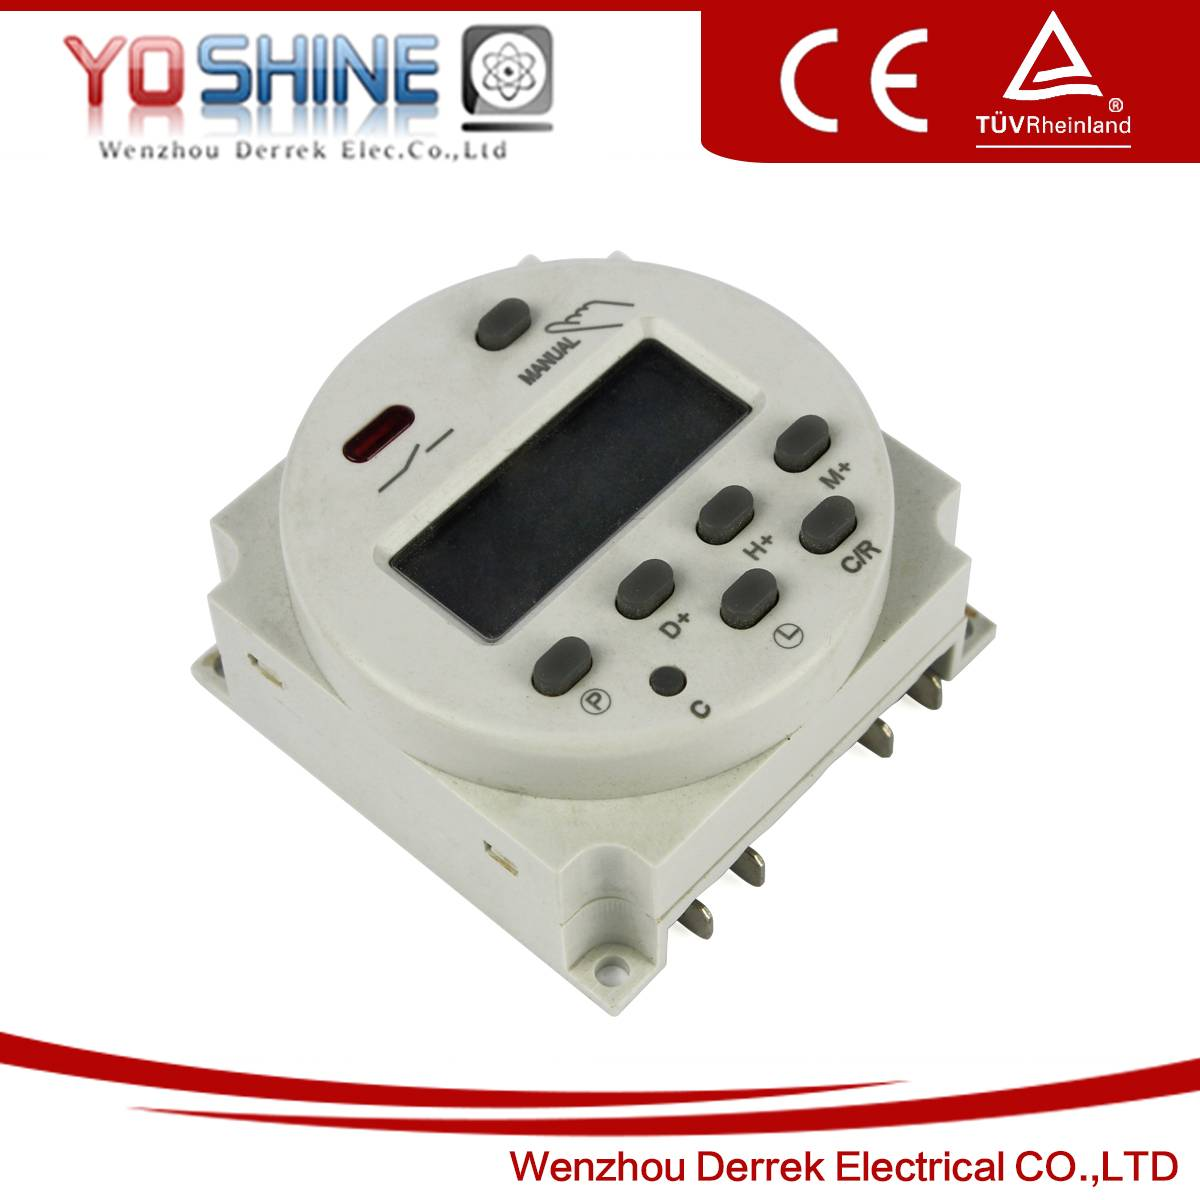 YX-804 DC24V Digital Timer Switch